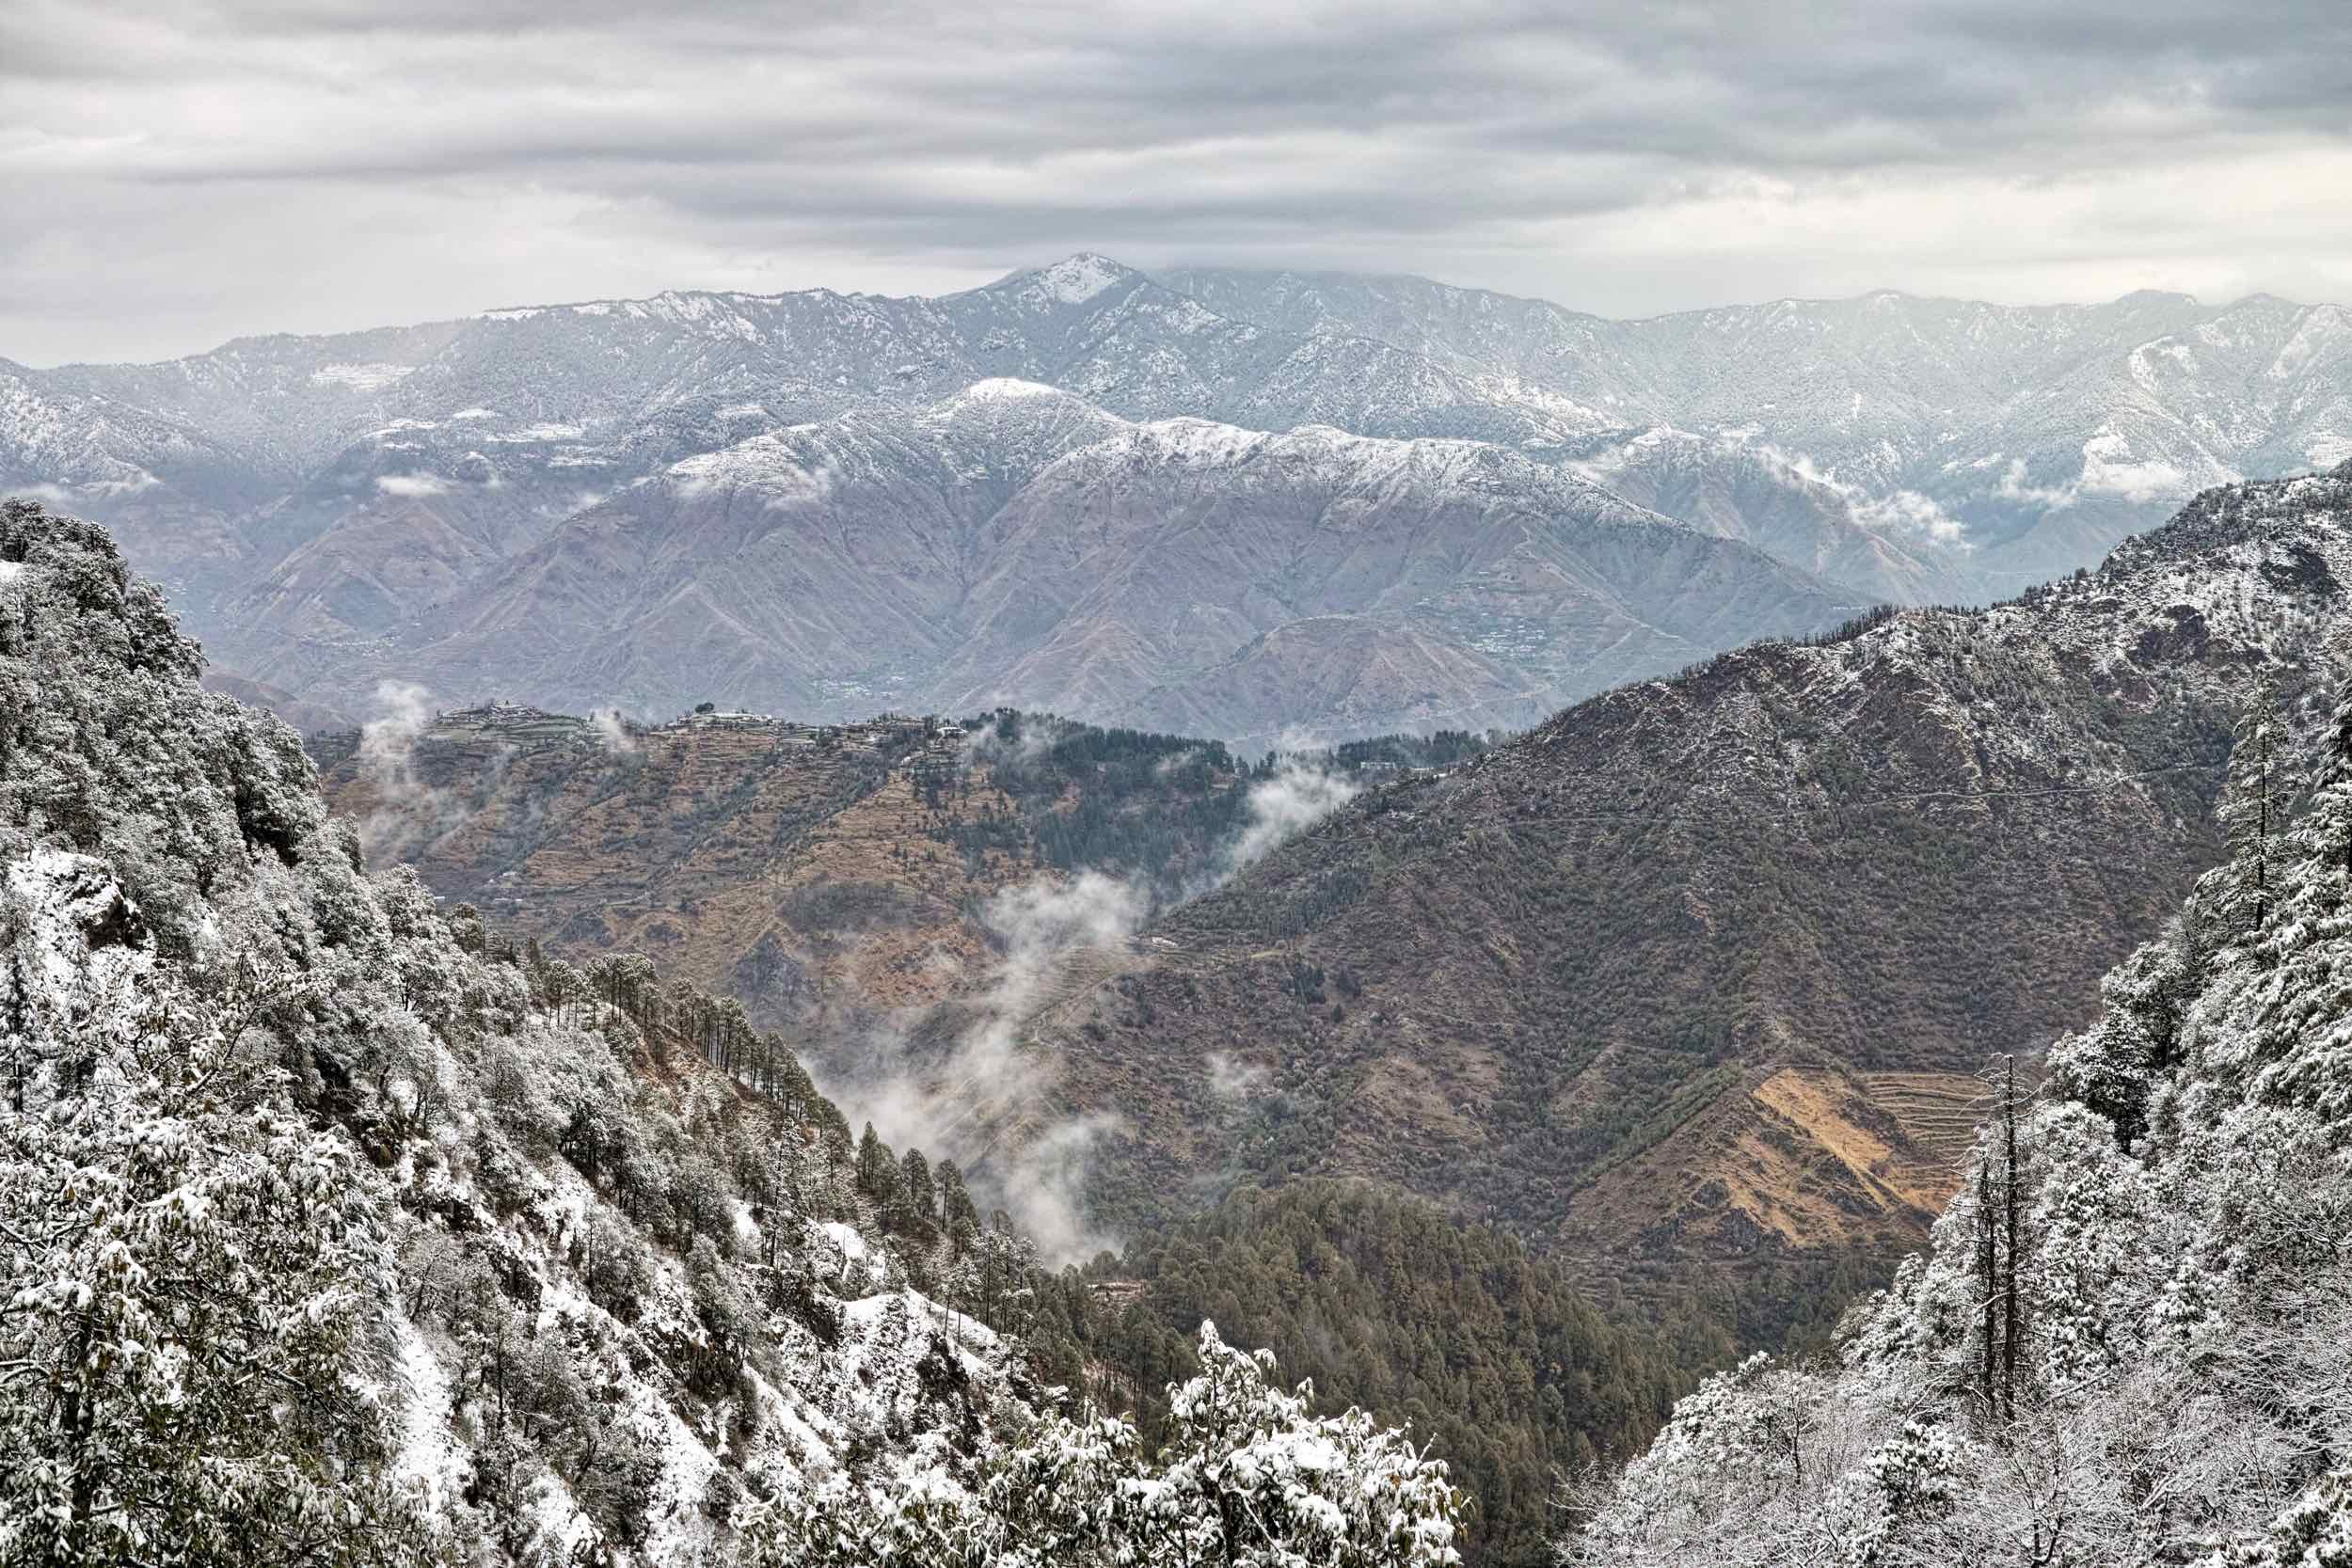 Nag Tibba covered in snow on Holi, as viewed from Bataghat (East end of Mussoorie)